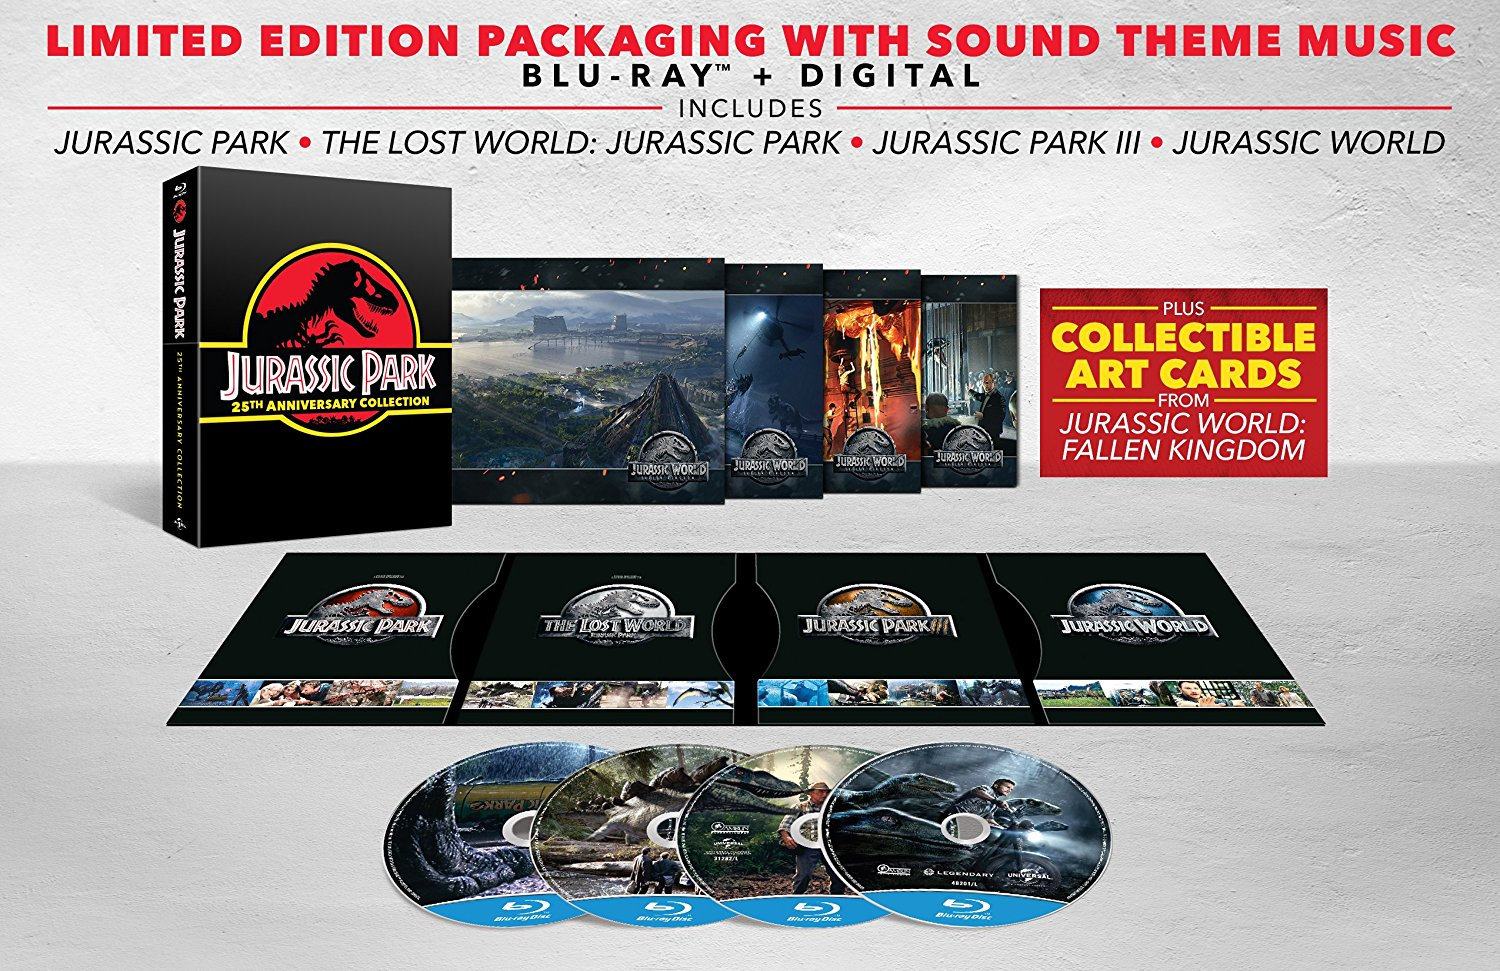 Jurassic Park 25th Anniversary Limited Collection UK Blu-Ray